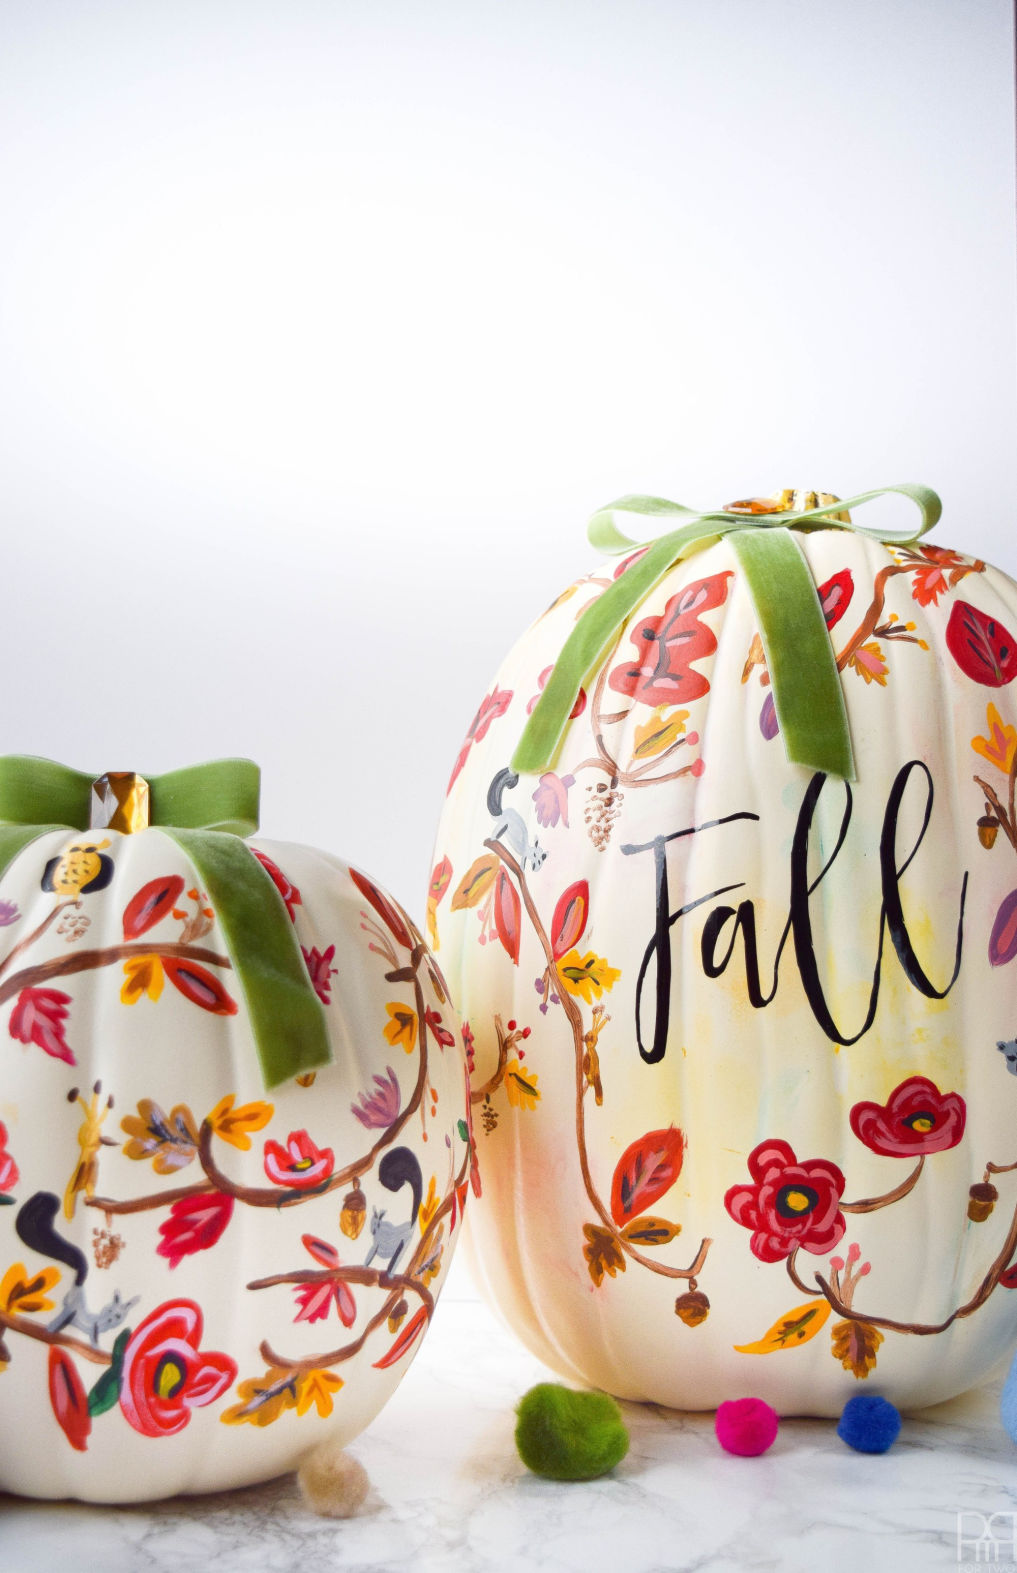 12 DIY Painted Pumpkins - step by step tutorial to create your own painted leaves pumpkin kellyelko.com #pumpkins #pumpkincrafts #paintingtutorials #paintingtips #fallcrafts #crafting